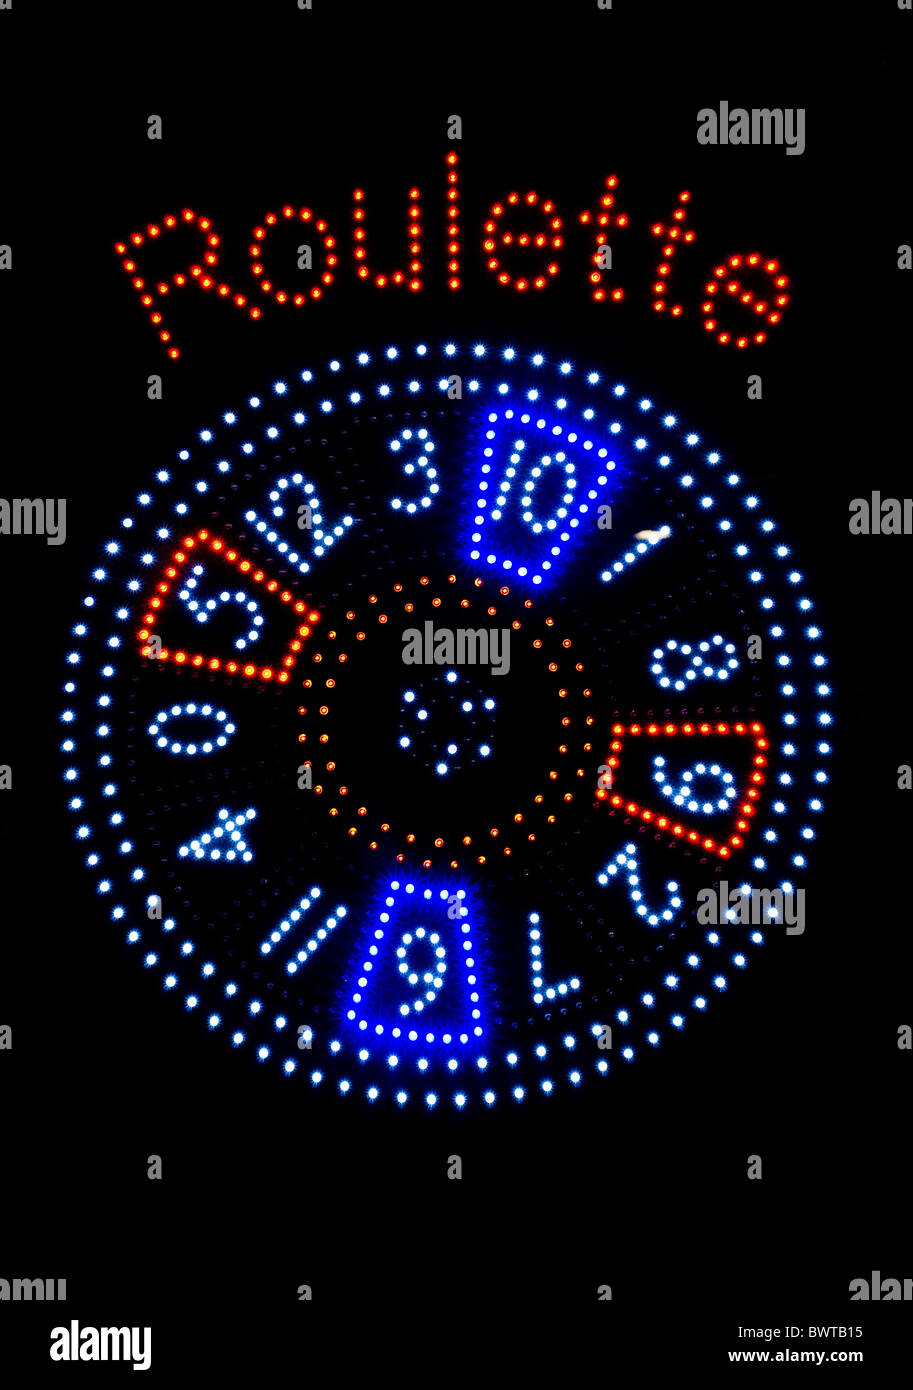 Roulette lights - Stock Image